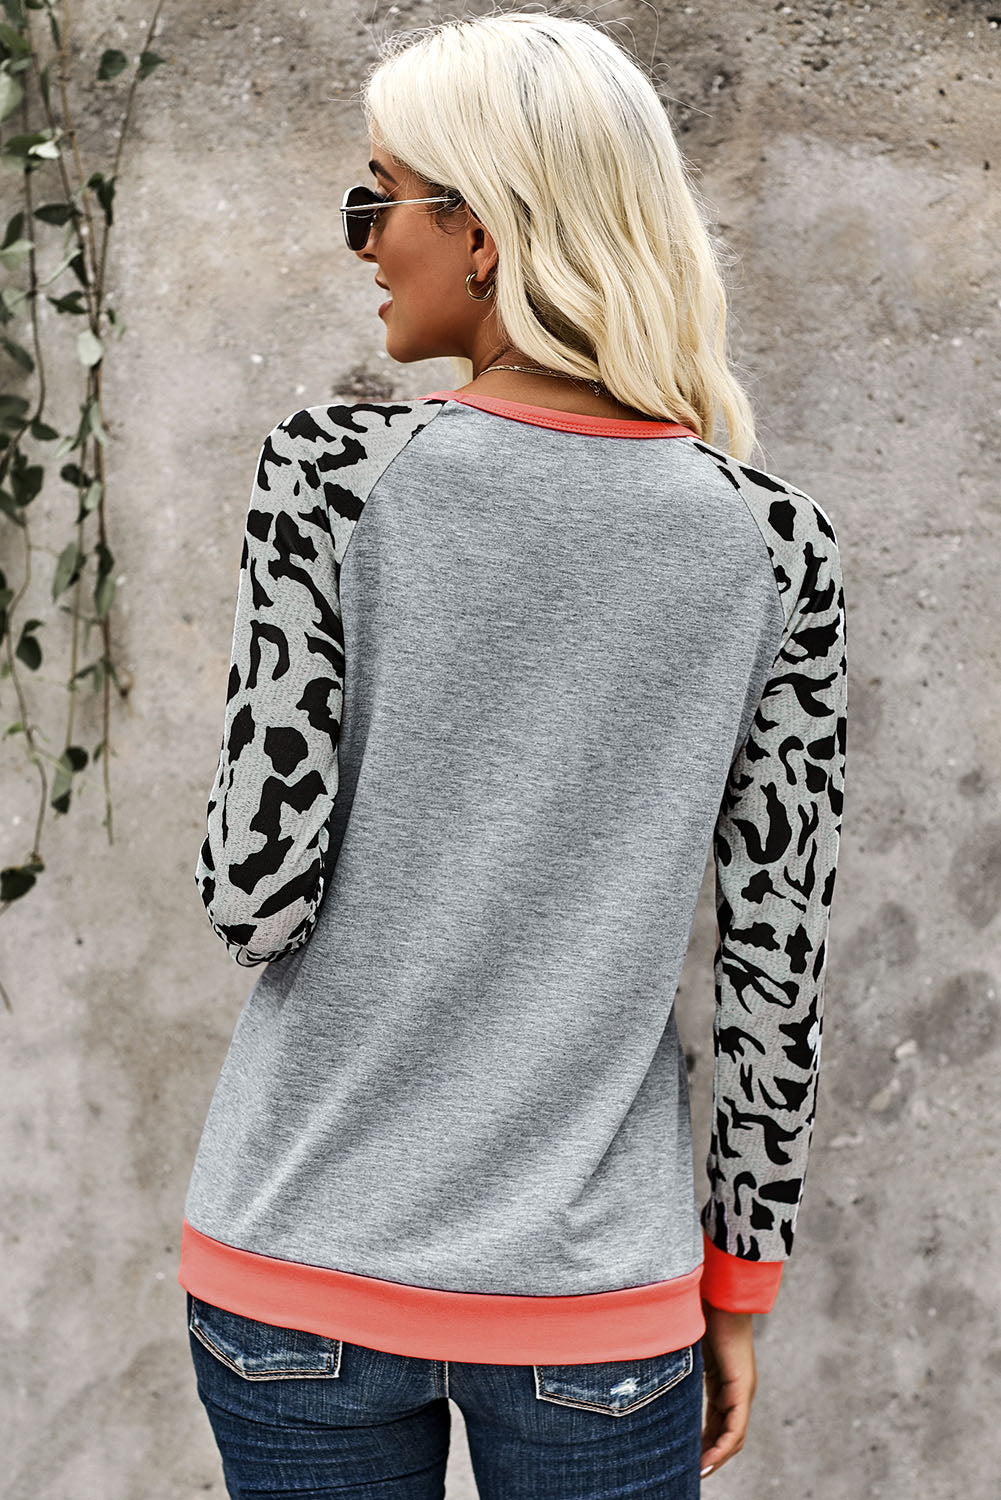 Leopard Sleeve Heather Gray Sweatshirt